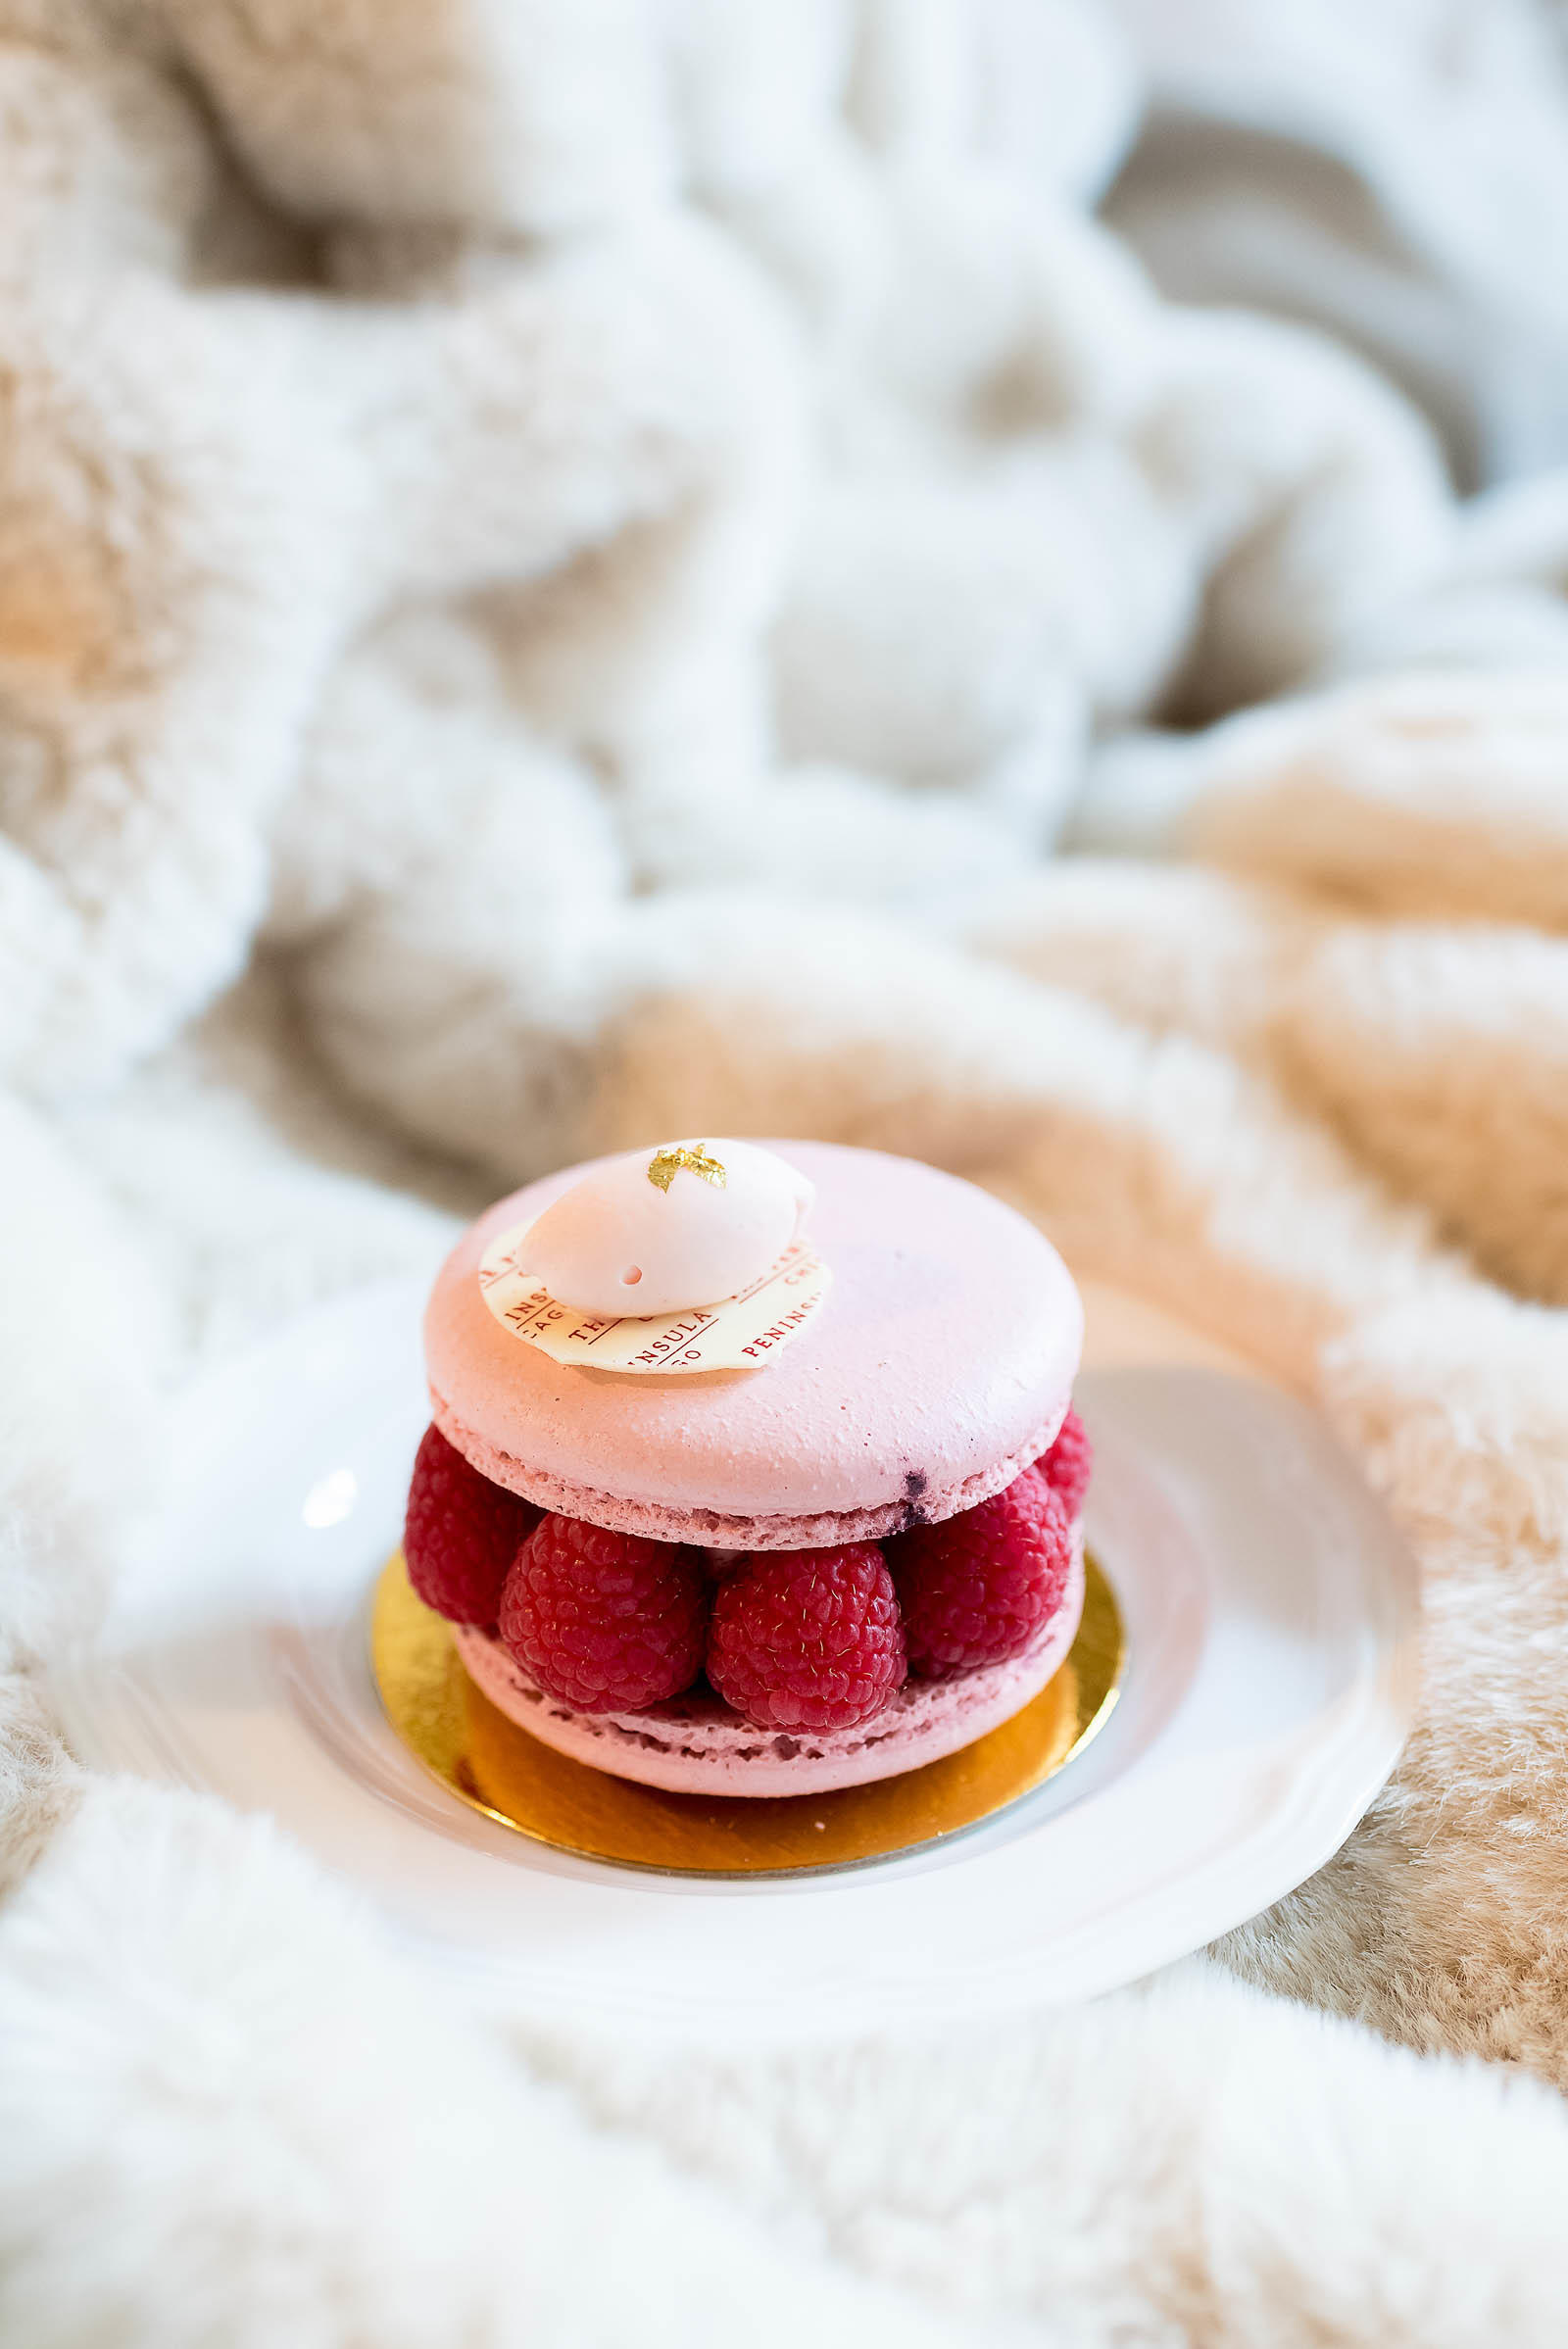 Peninsula Chicago Pierrot Gourmet Raspberry Macaron Sandwich